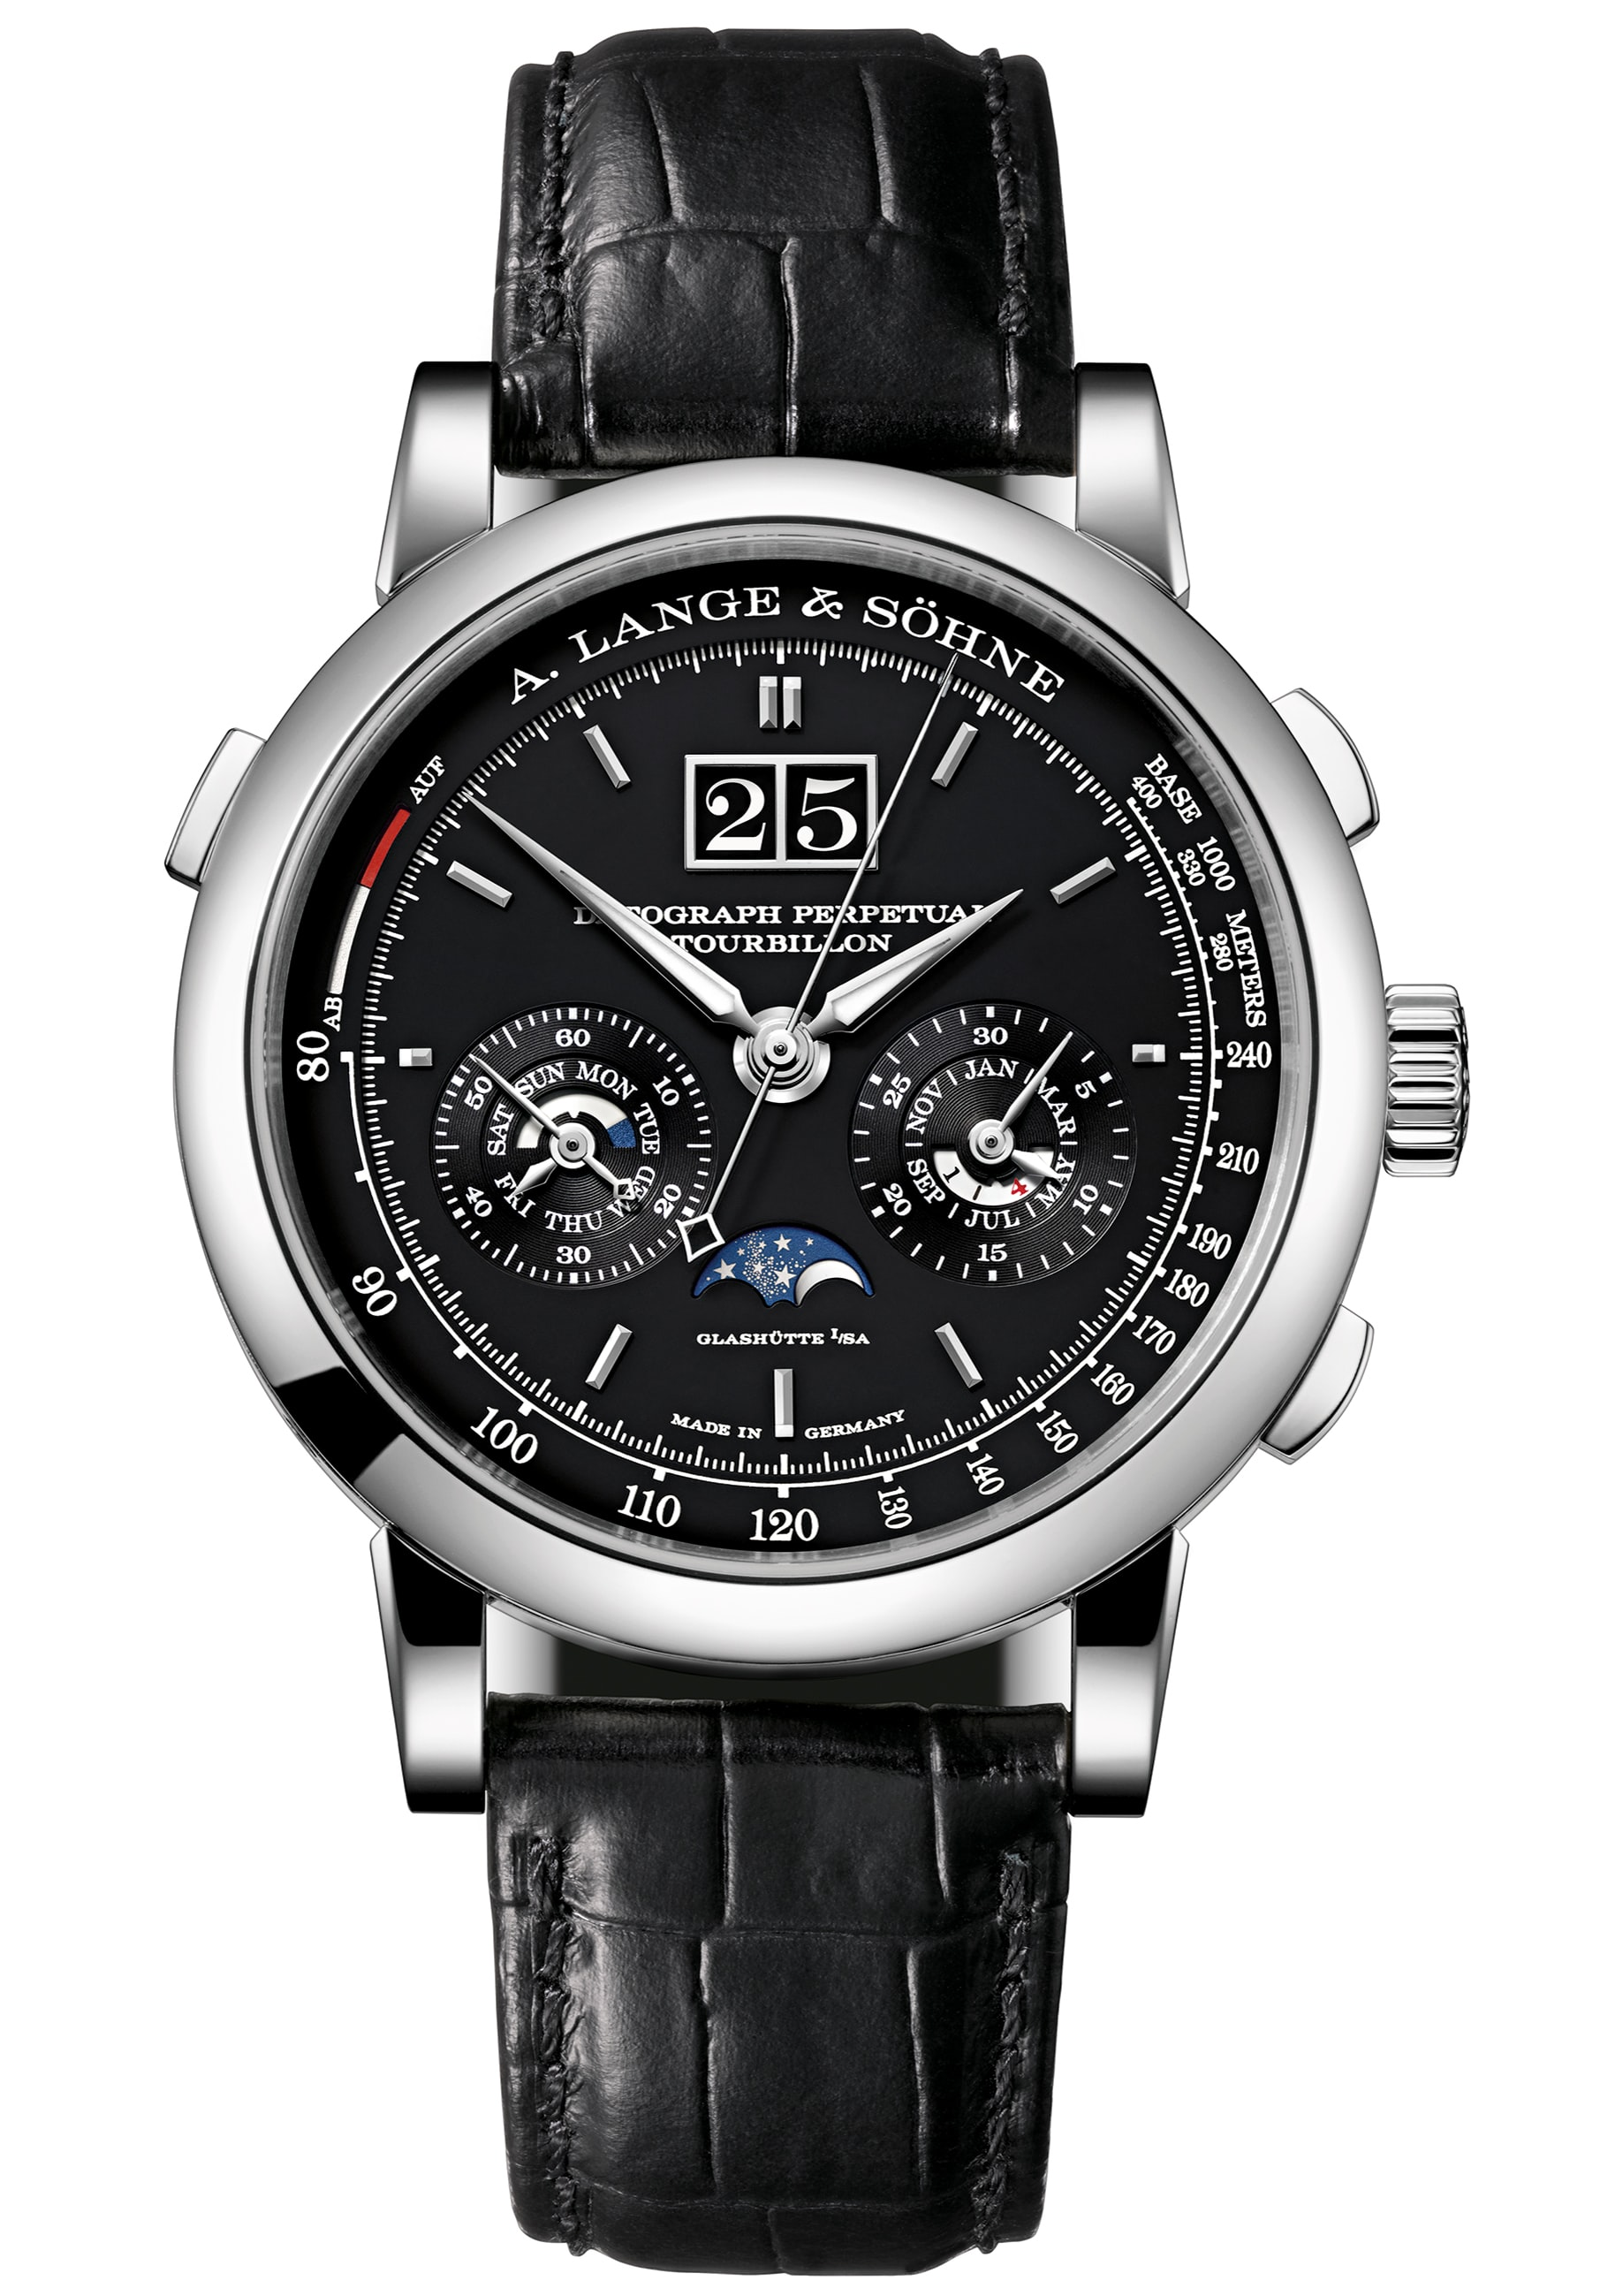 Announcing The Sixth Annual Madison Avenue Watch Week Announcing The Sixth Annual Madison Avenue Watch Week A